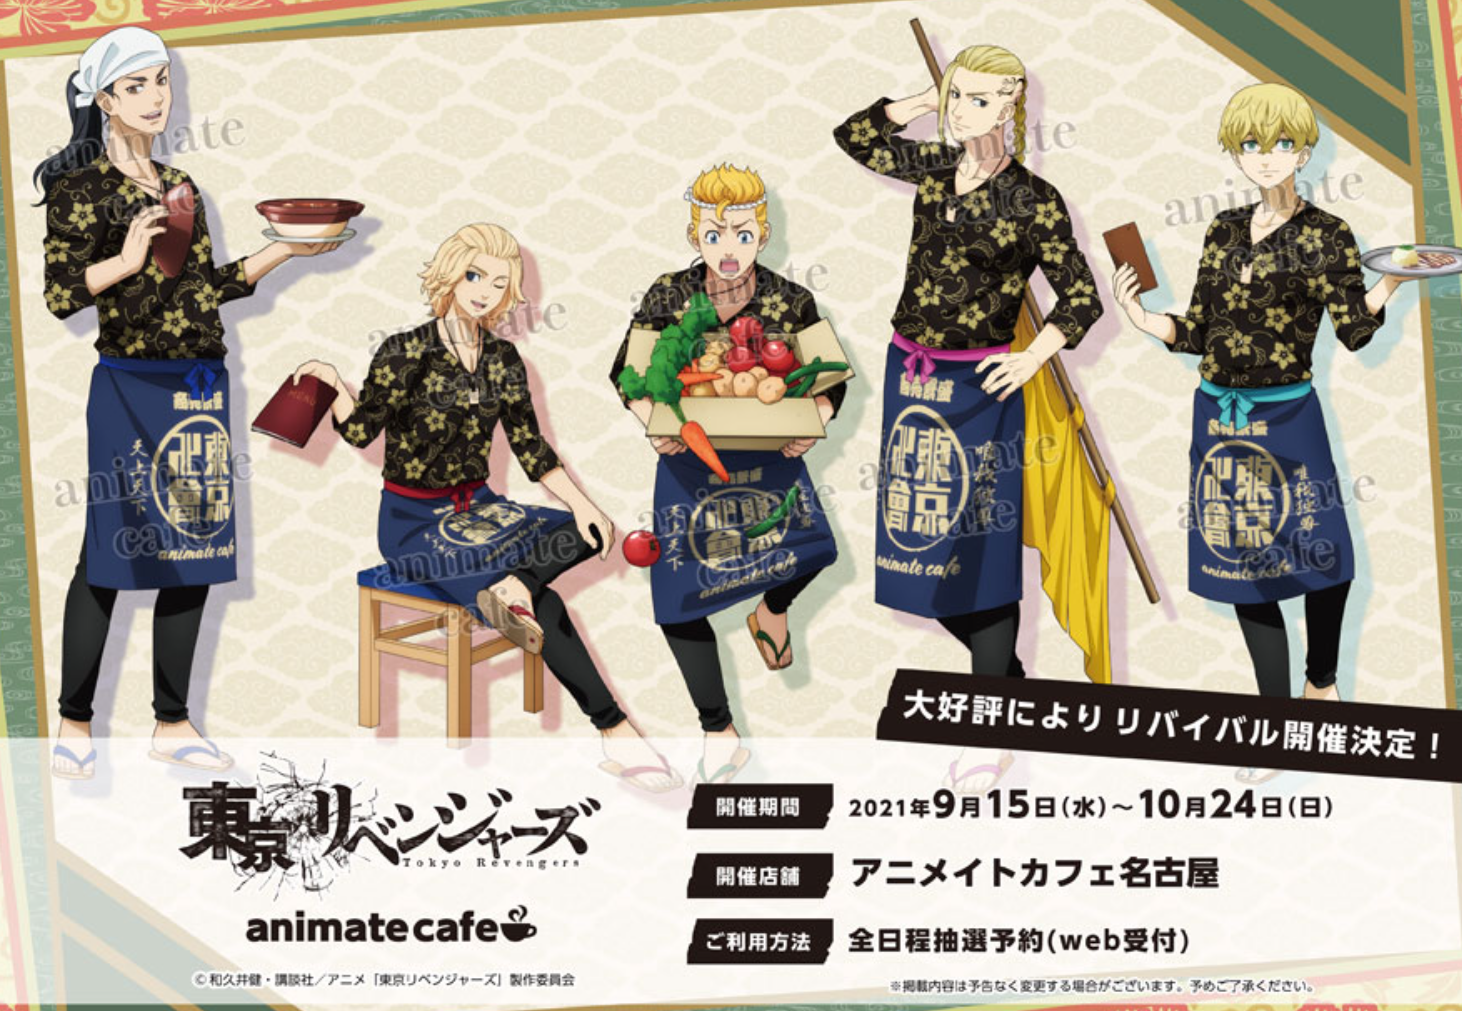 Featured image for September 2021 Anime, Donghua and Otome Game Collaborations and Pop-up Store Events